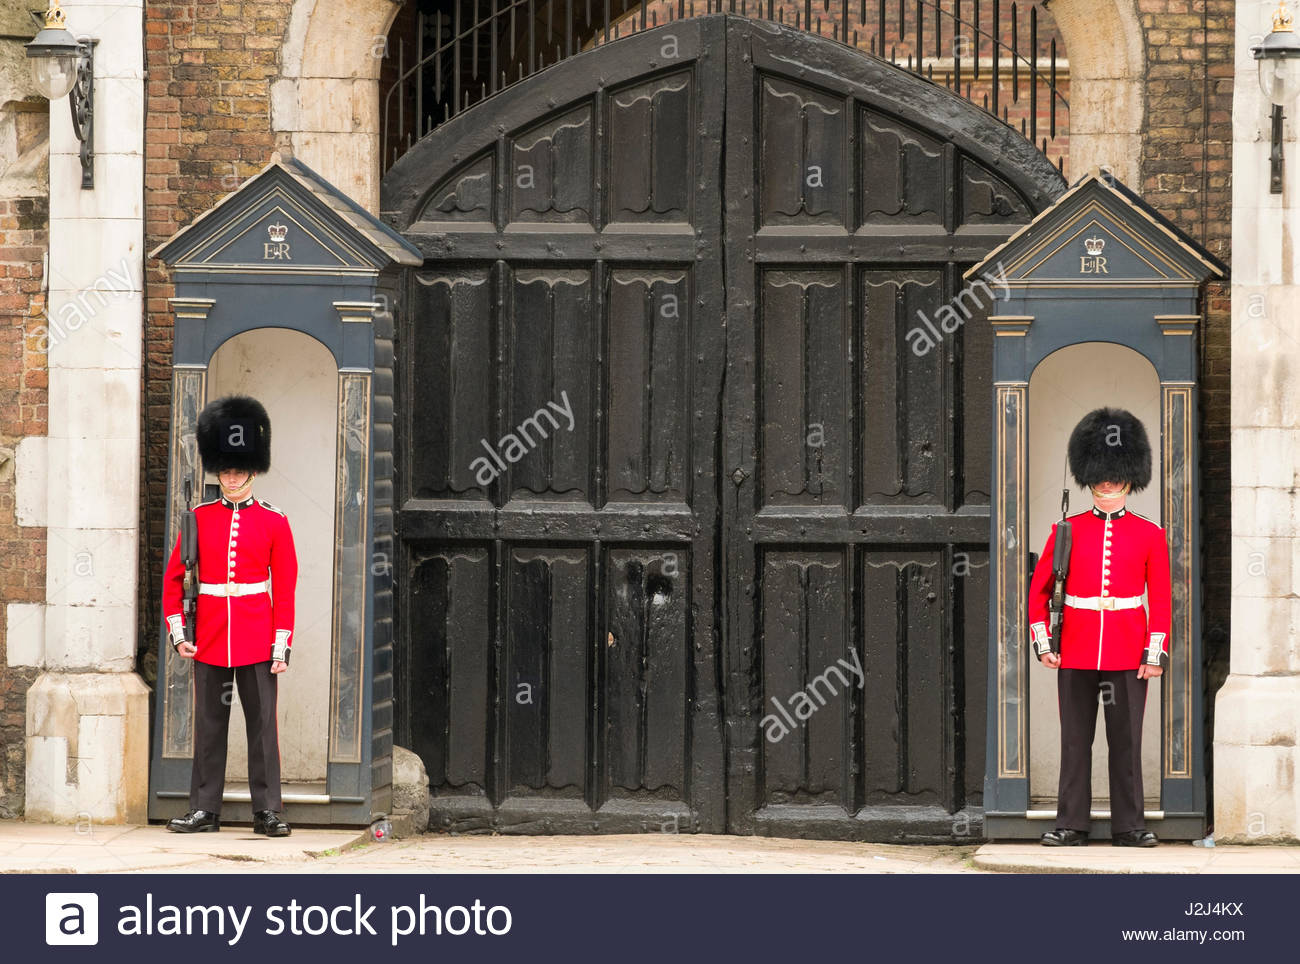 Grenadier Guards standing at attention holding L85A1 IW bullpup rifles on sentry duty, St James's Palace, Cleveland - Stock Image